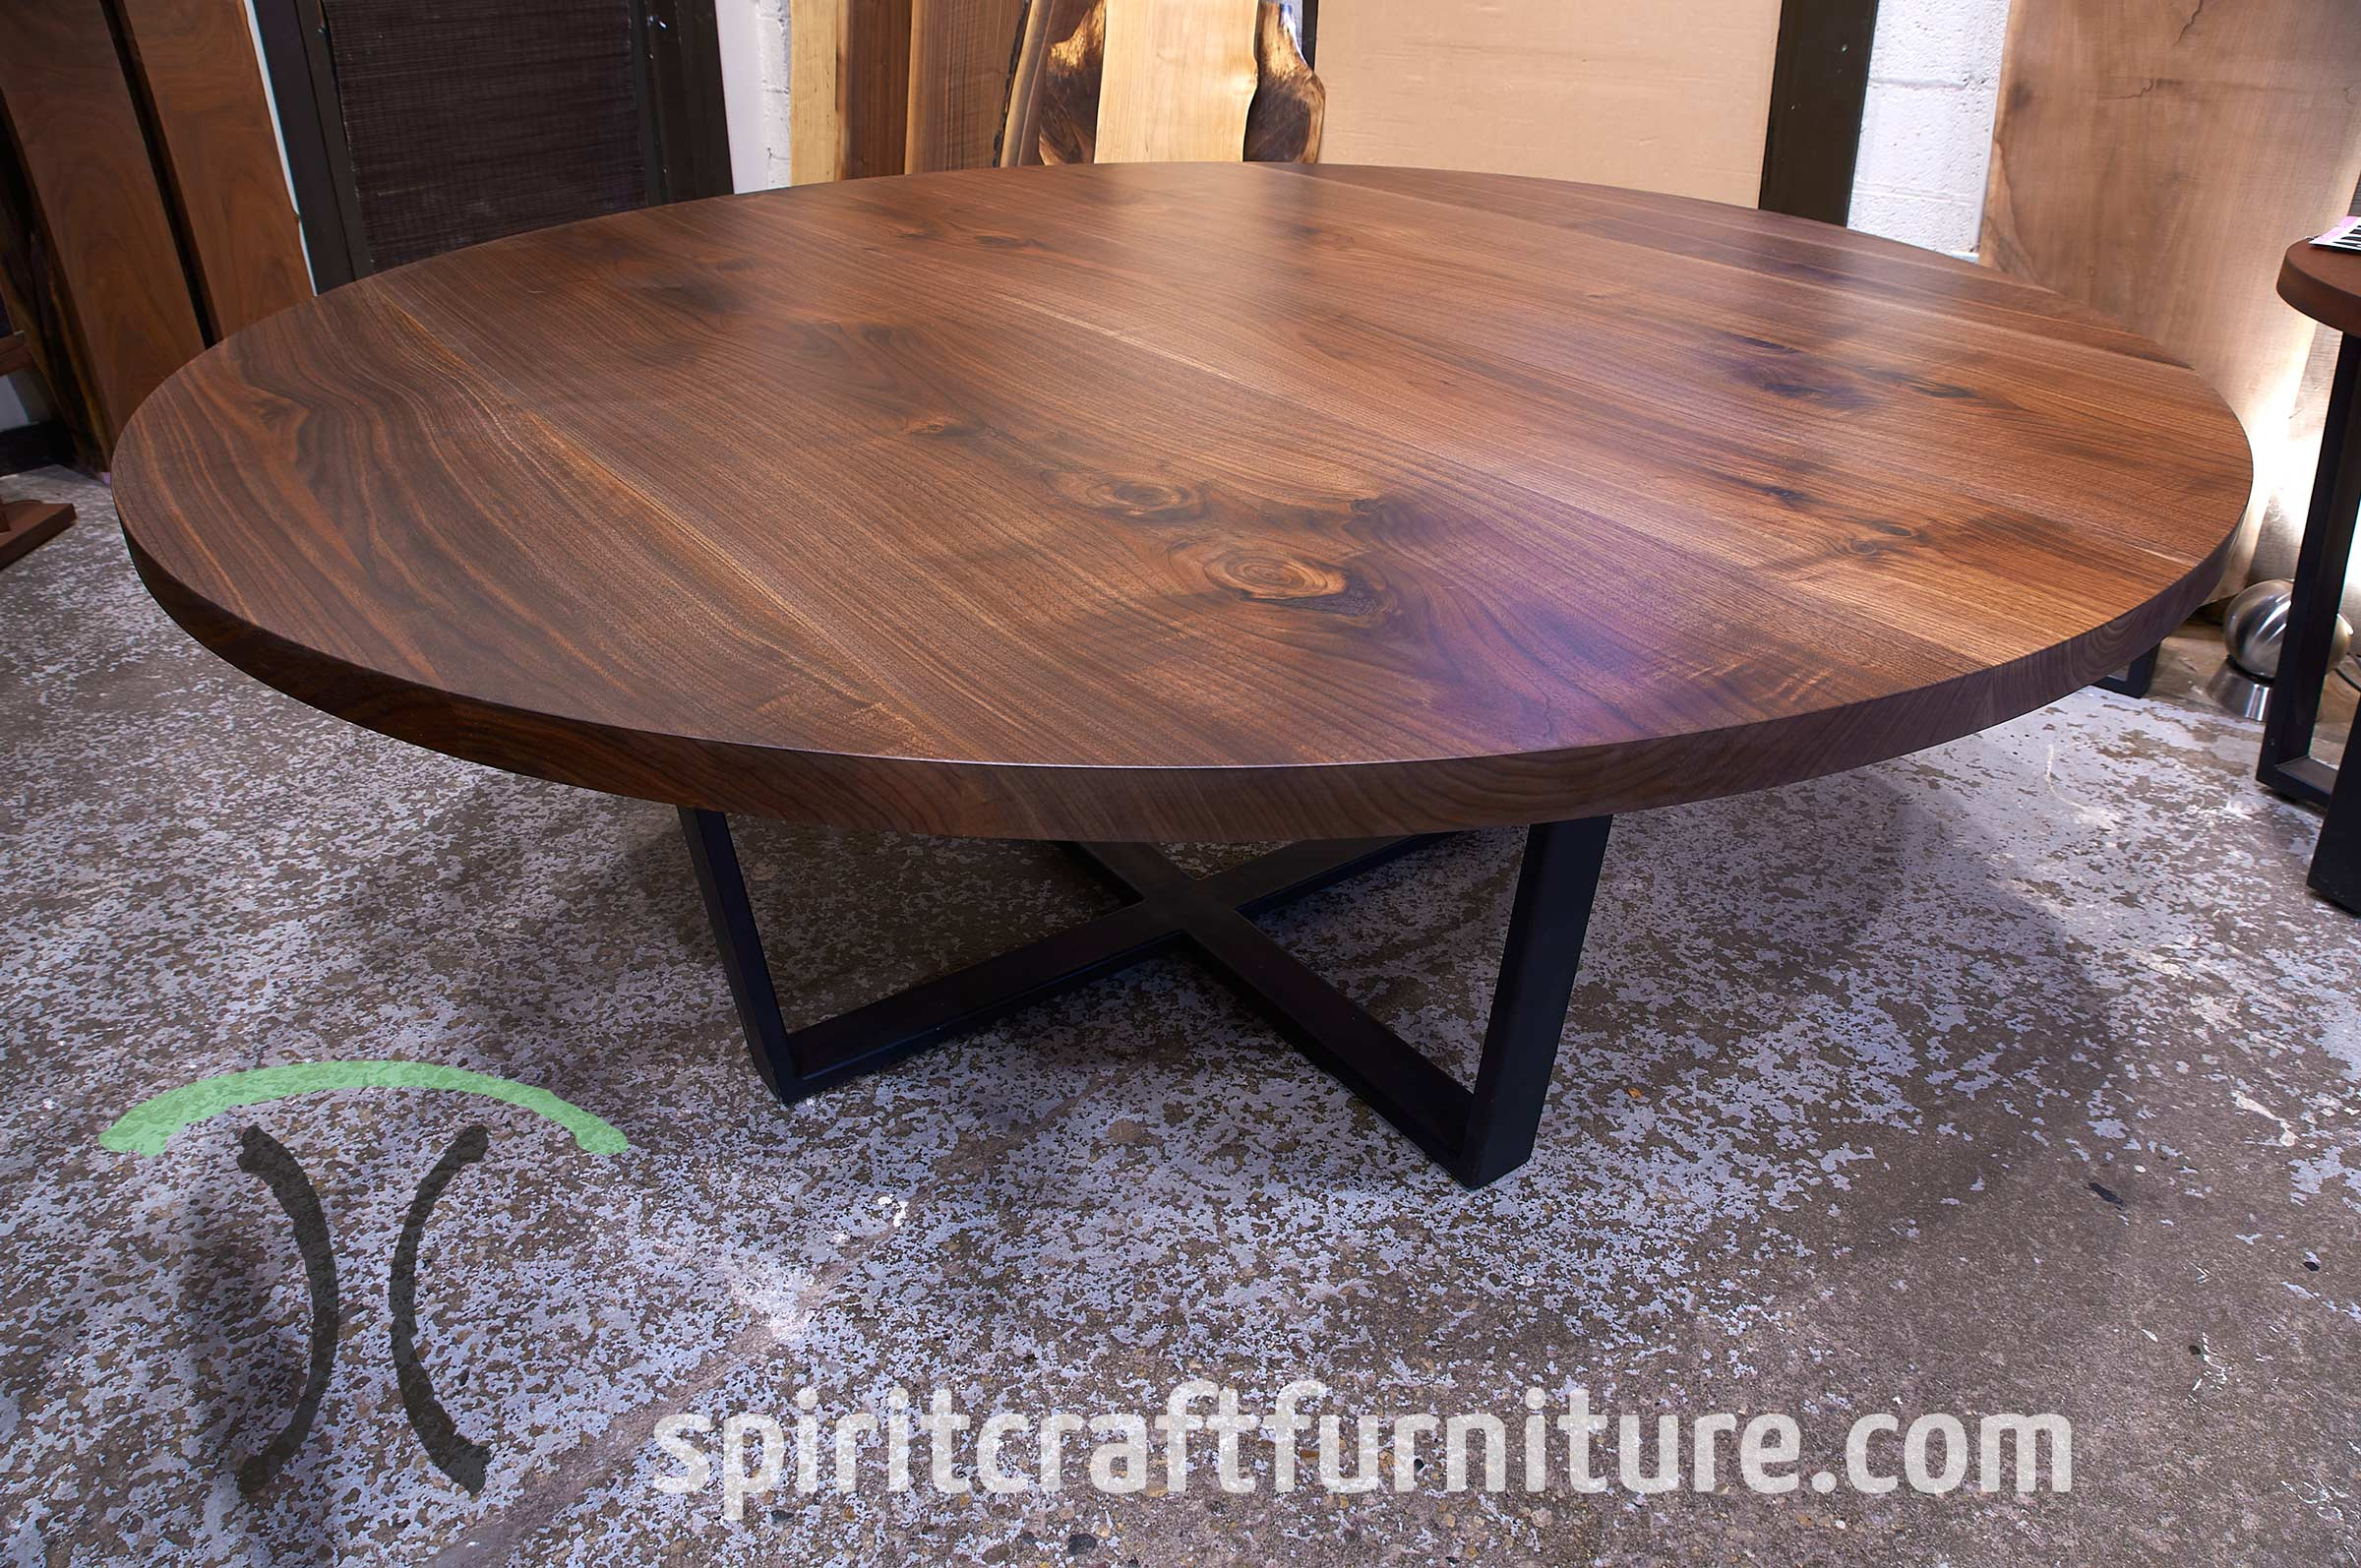 72 inch Black Walnut Round Conference Table on Crossed Trapezoidal Steel Base that will seat eight, handcrafted in Chicago area, Illinois.